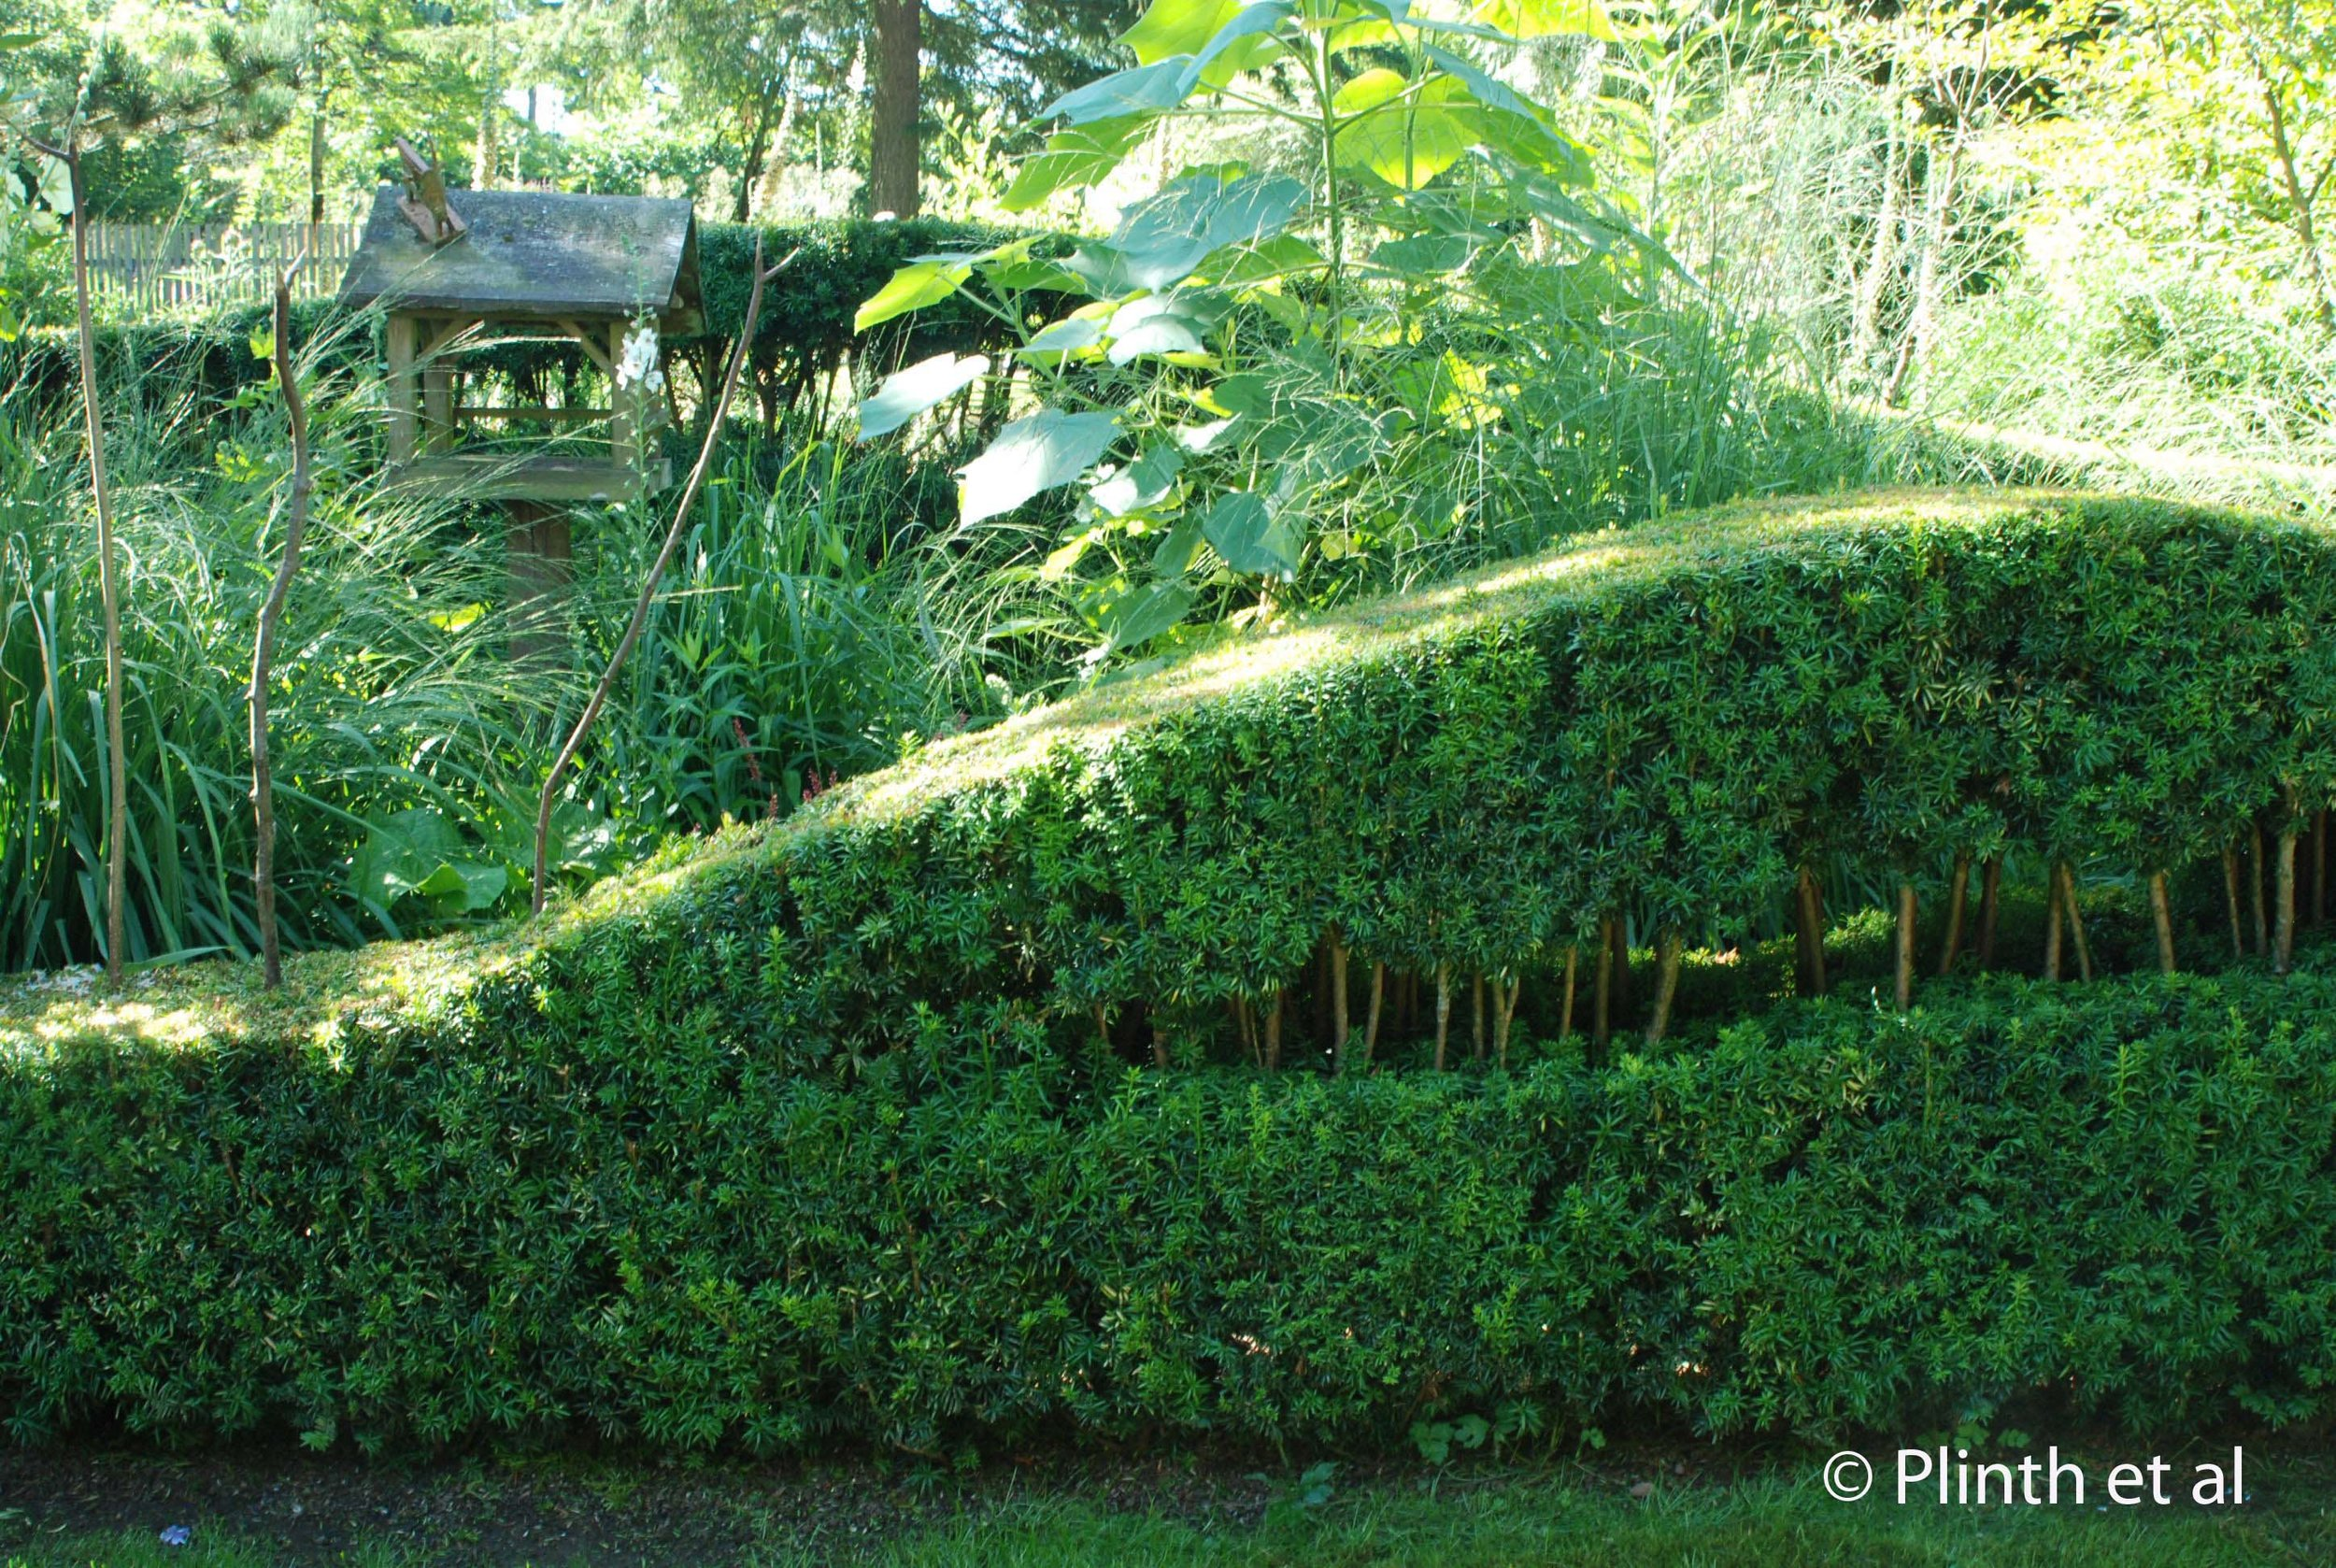 The hedging at Free Spirit is modernist and quirky, reflecting the continental European technique of using hedges and topiary  as a framework for lush herbaceous plantings.